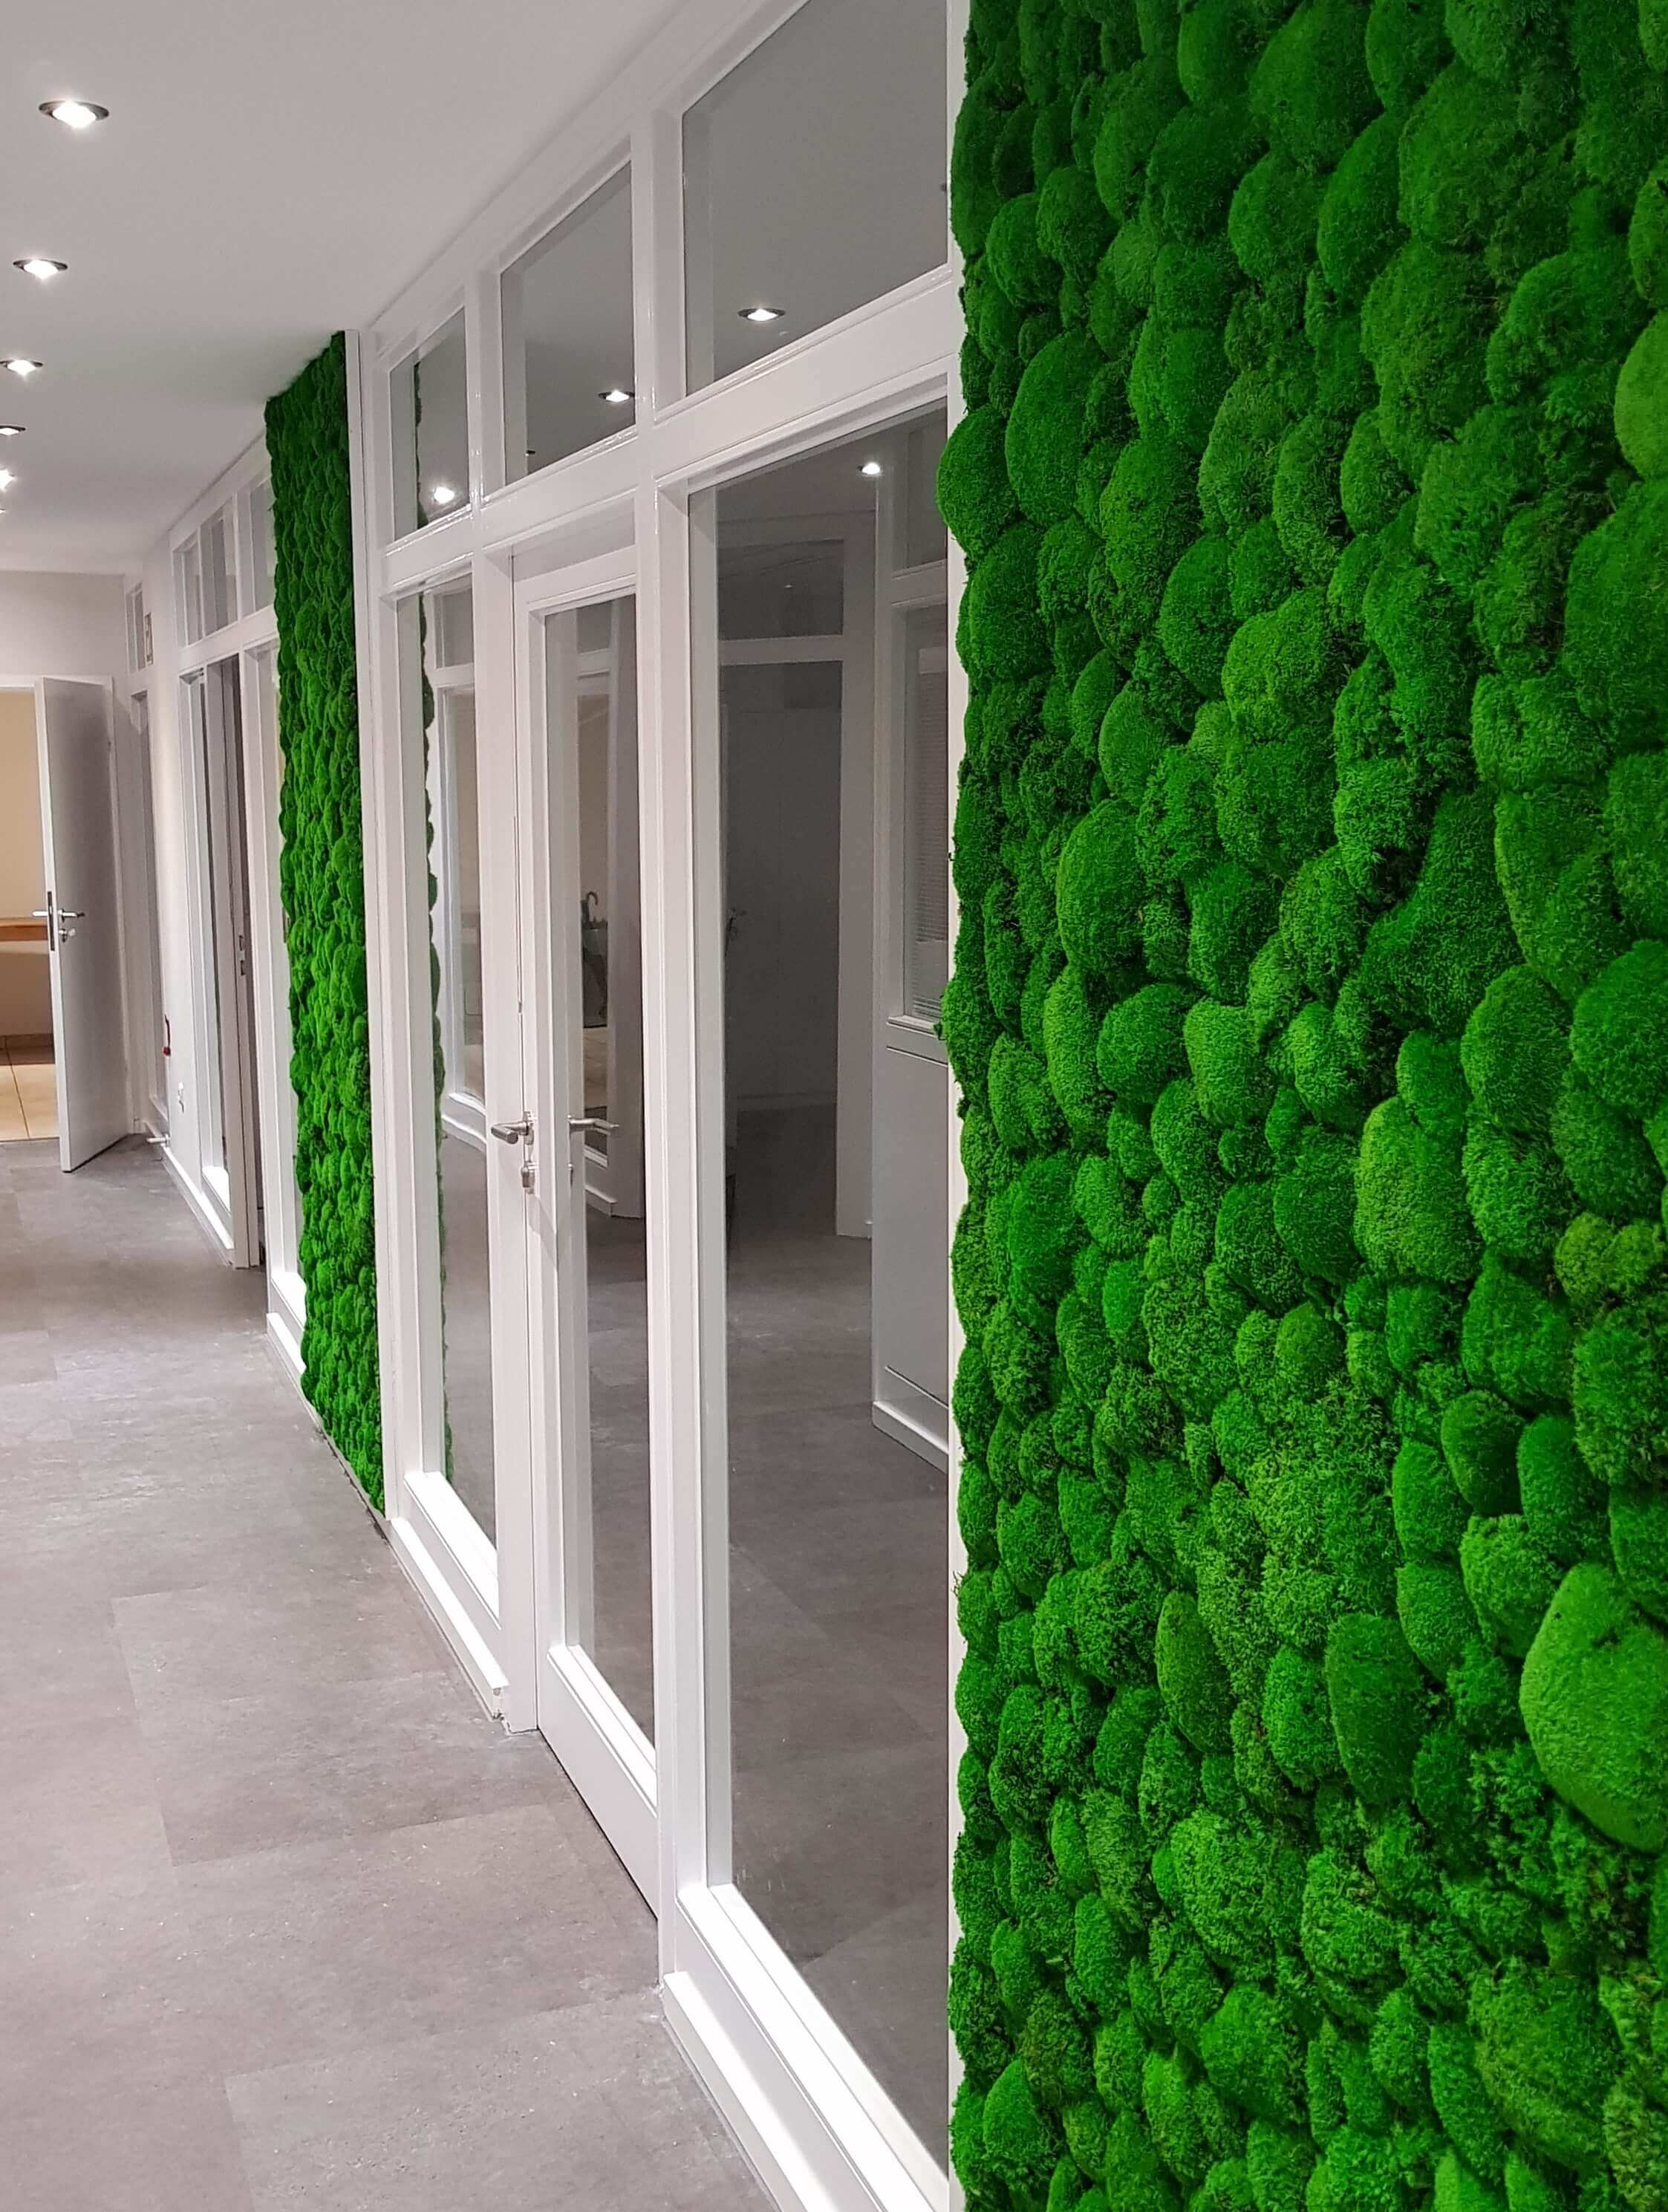 Ball moss walls for Wisag, Germany